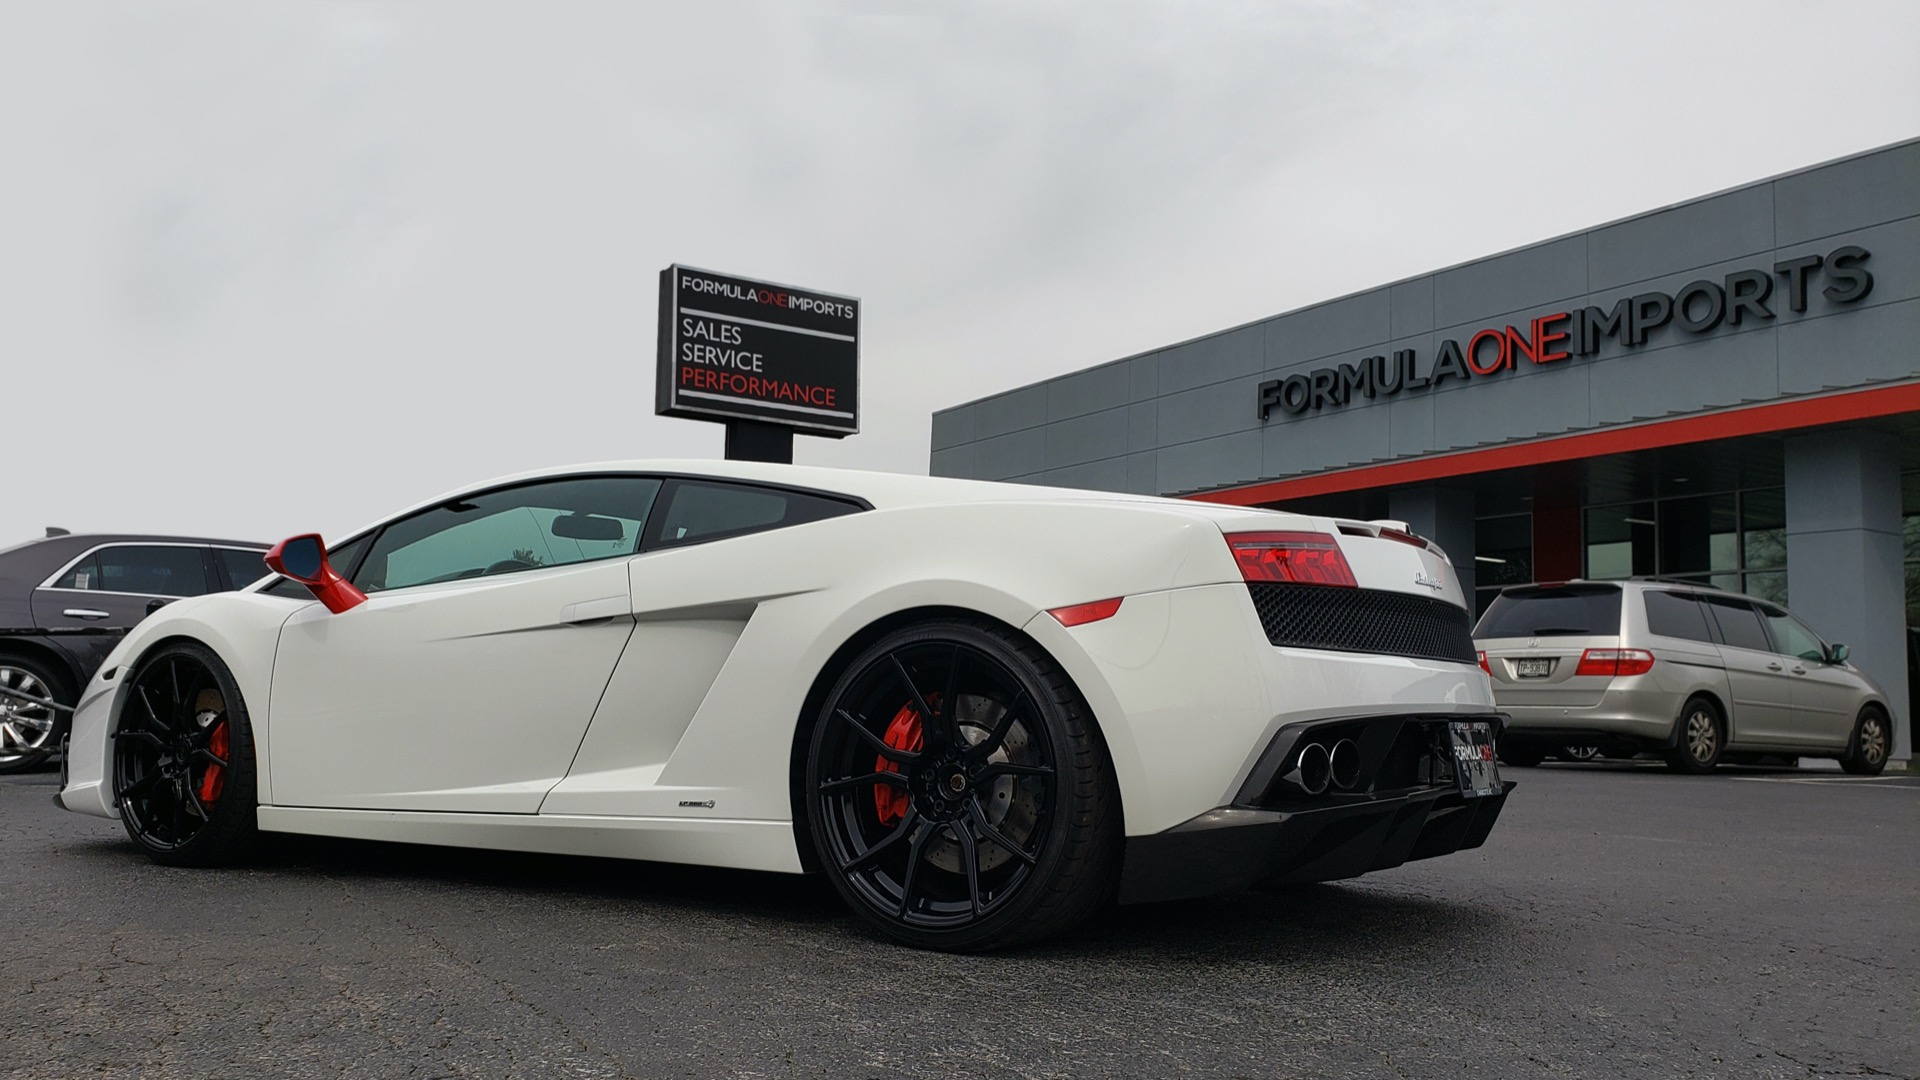 Used 2013 Lamborghini Gallardo LP560-4 560HP / AWD / NAV / CAMERA for sale Sold at Formula Imports in Charlotte NC 28227 4